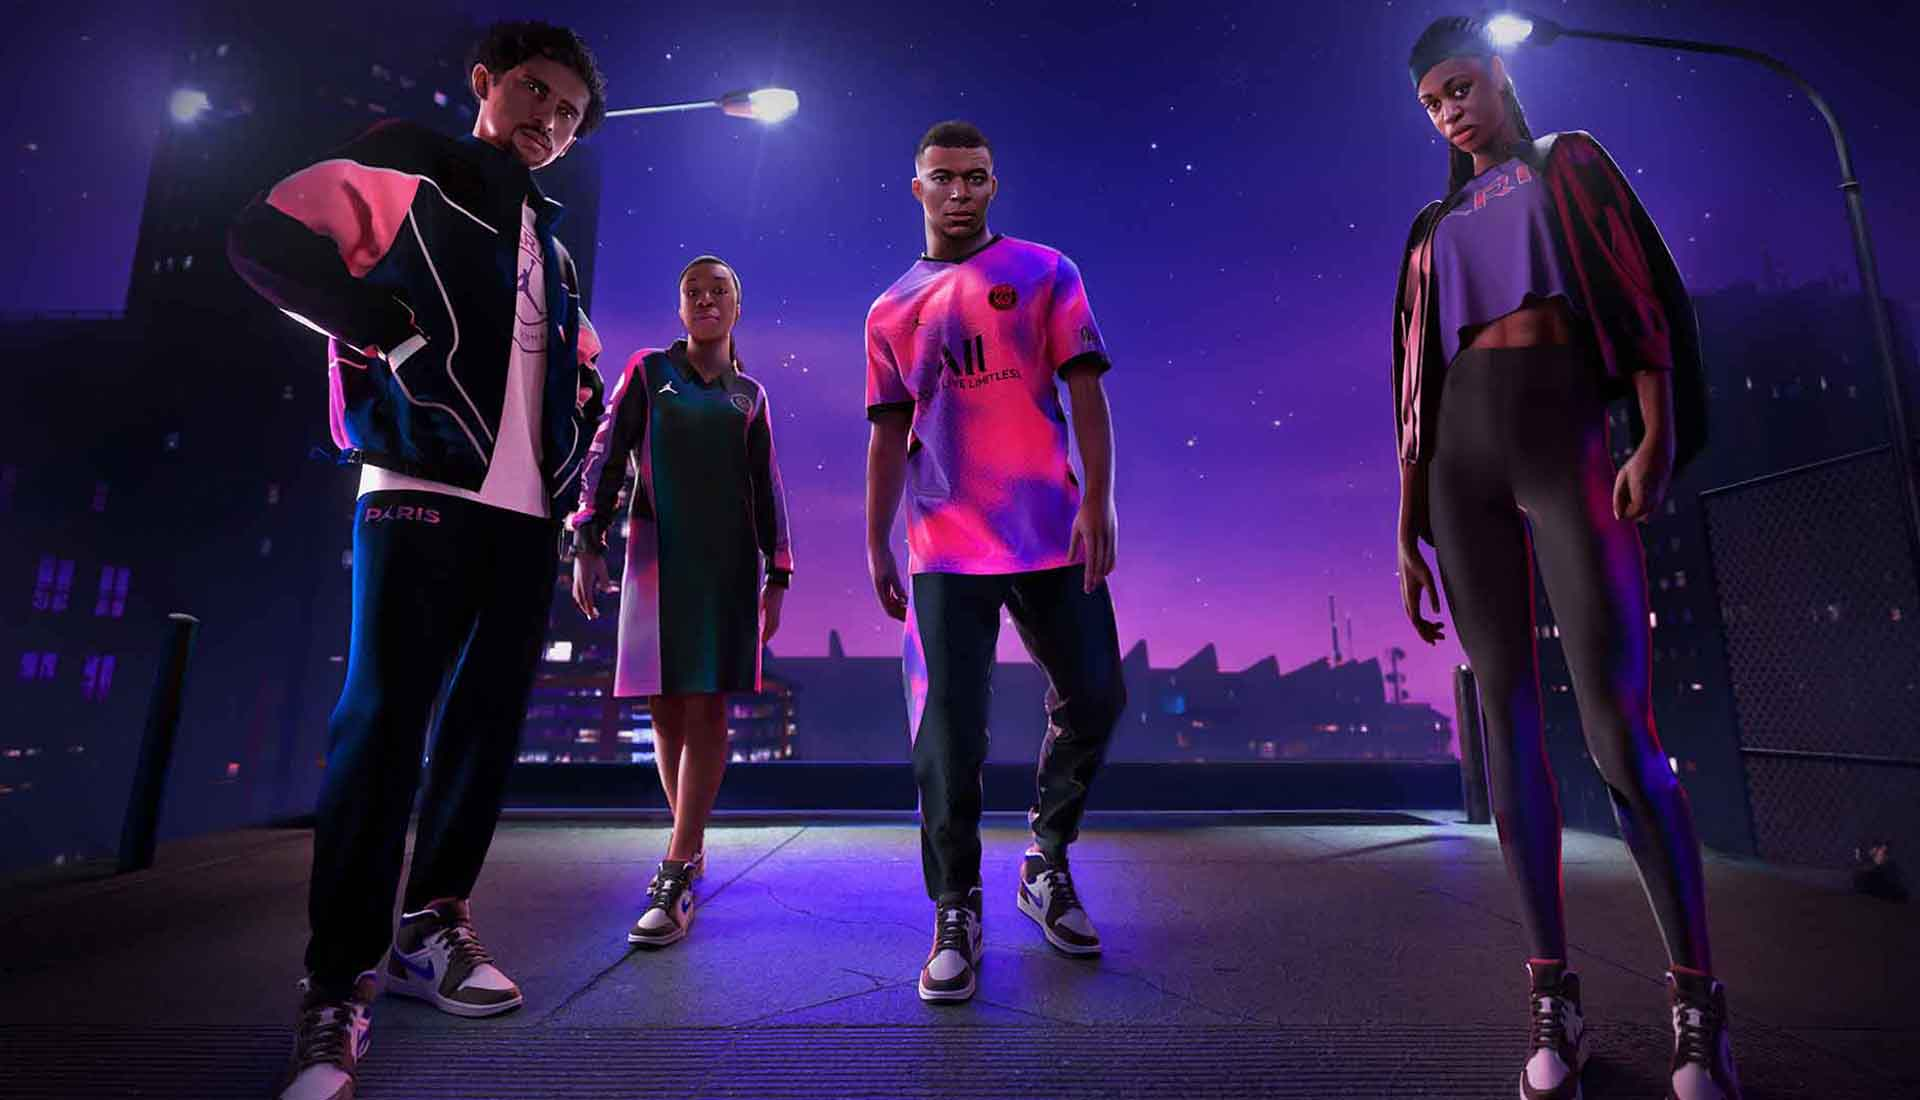 PSG x Jordan Launch 20/21 Fourth Kit & Apparel Collection